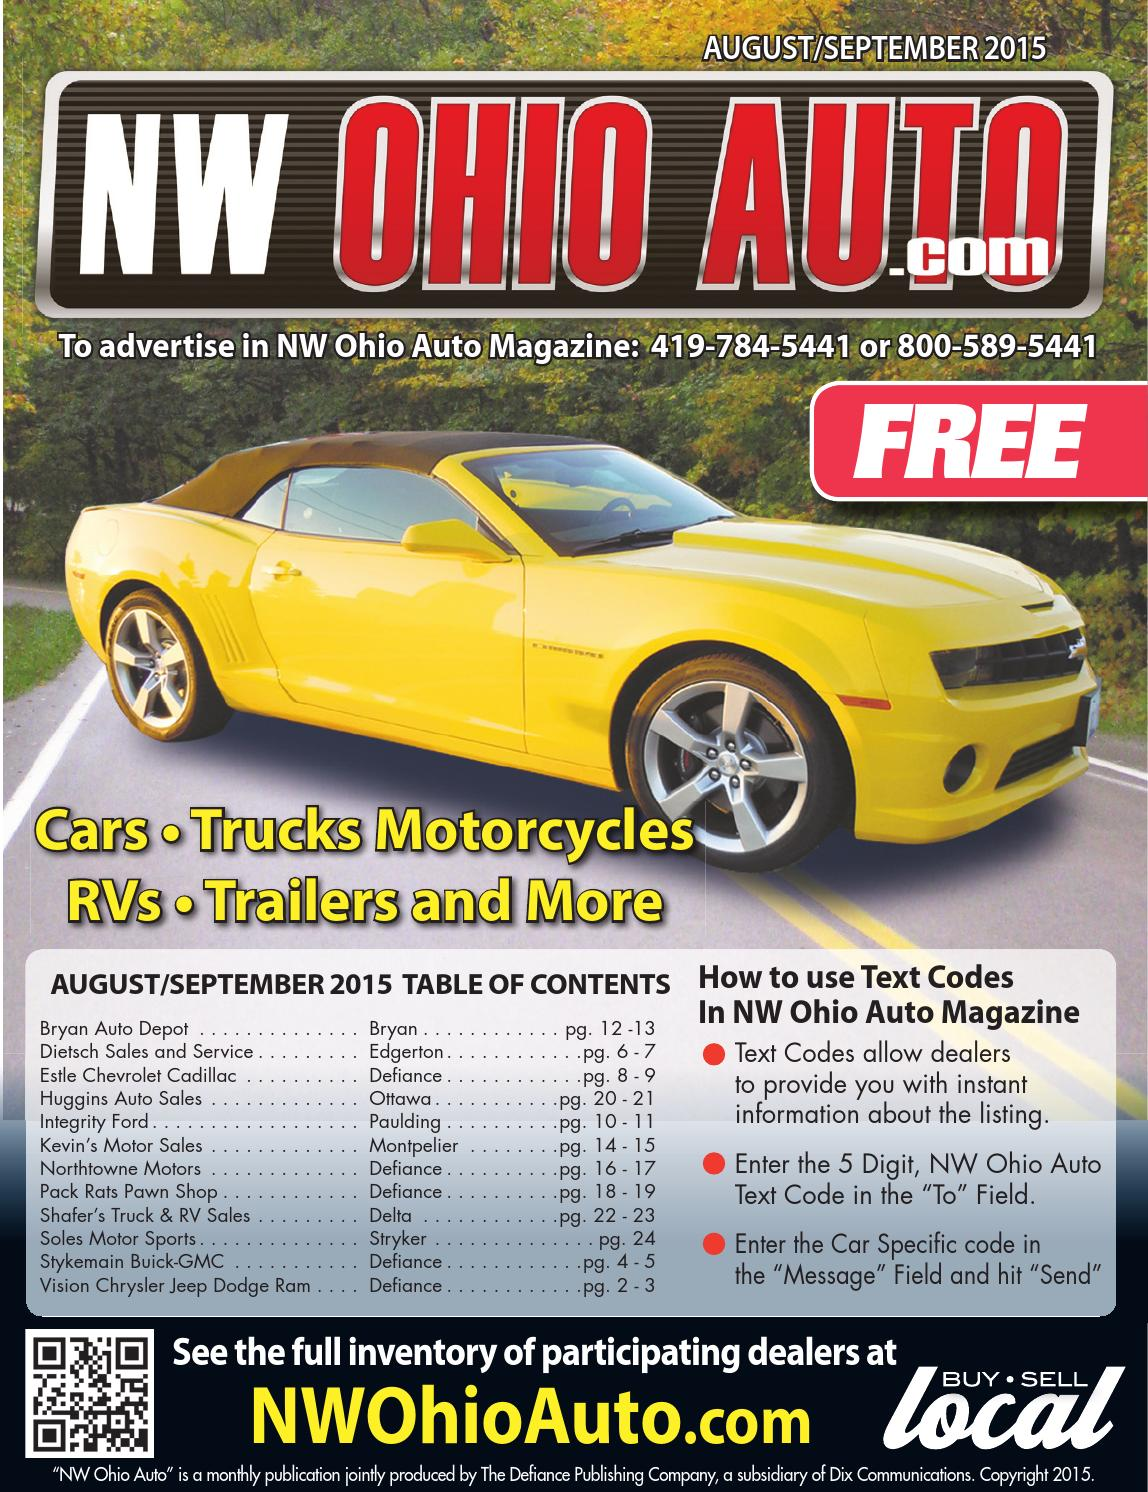 Nw ohio auto august september 2015 by gatehouse media for Northtowne motors defiance oh